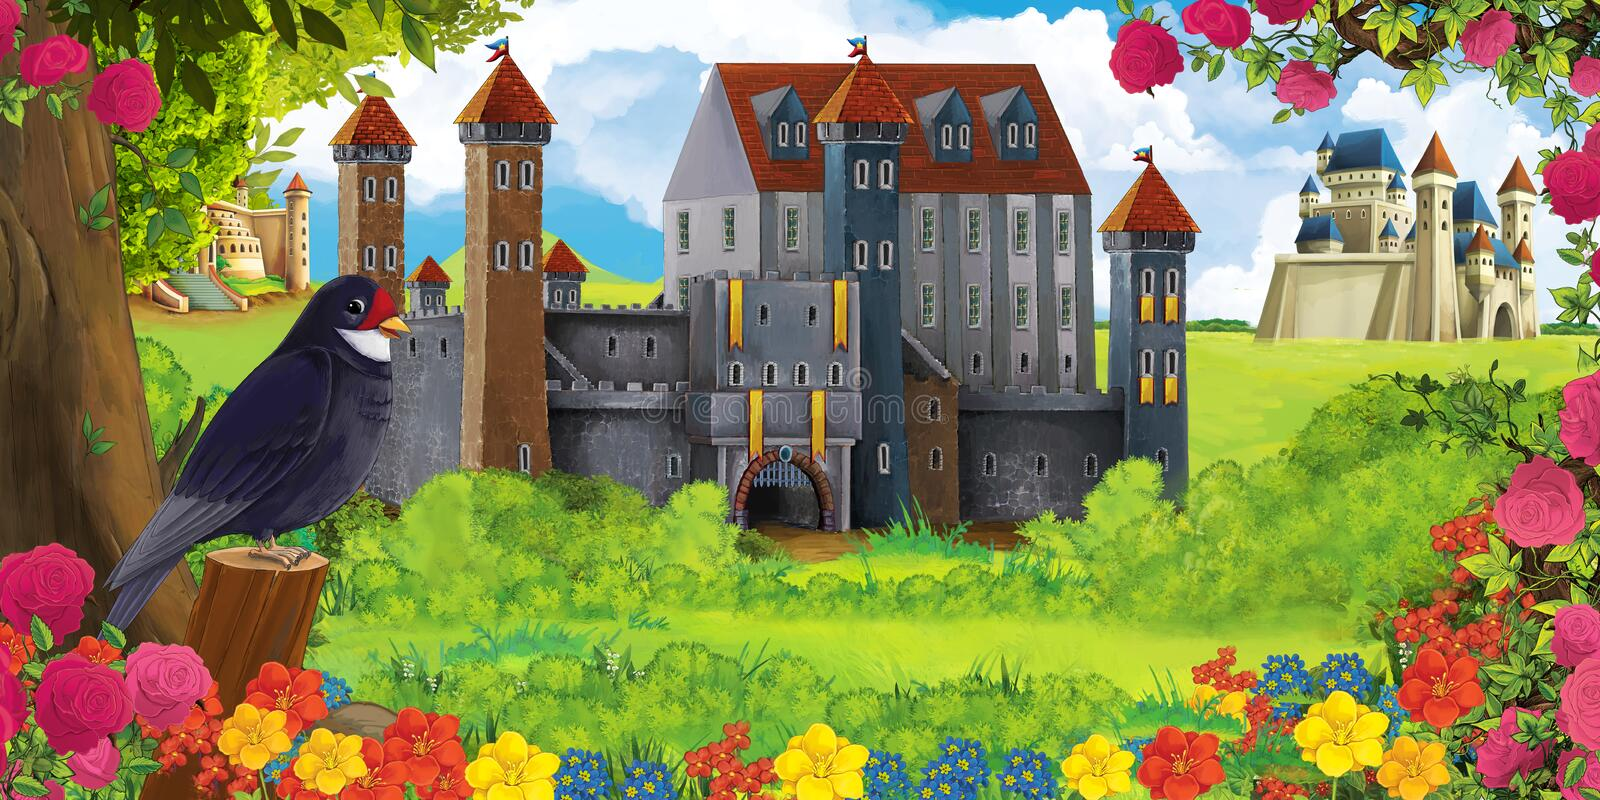 Cartoon nature scene with beautiful castles near the forest and resting cuckoo bird vector illustration